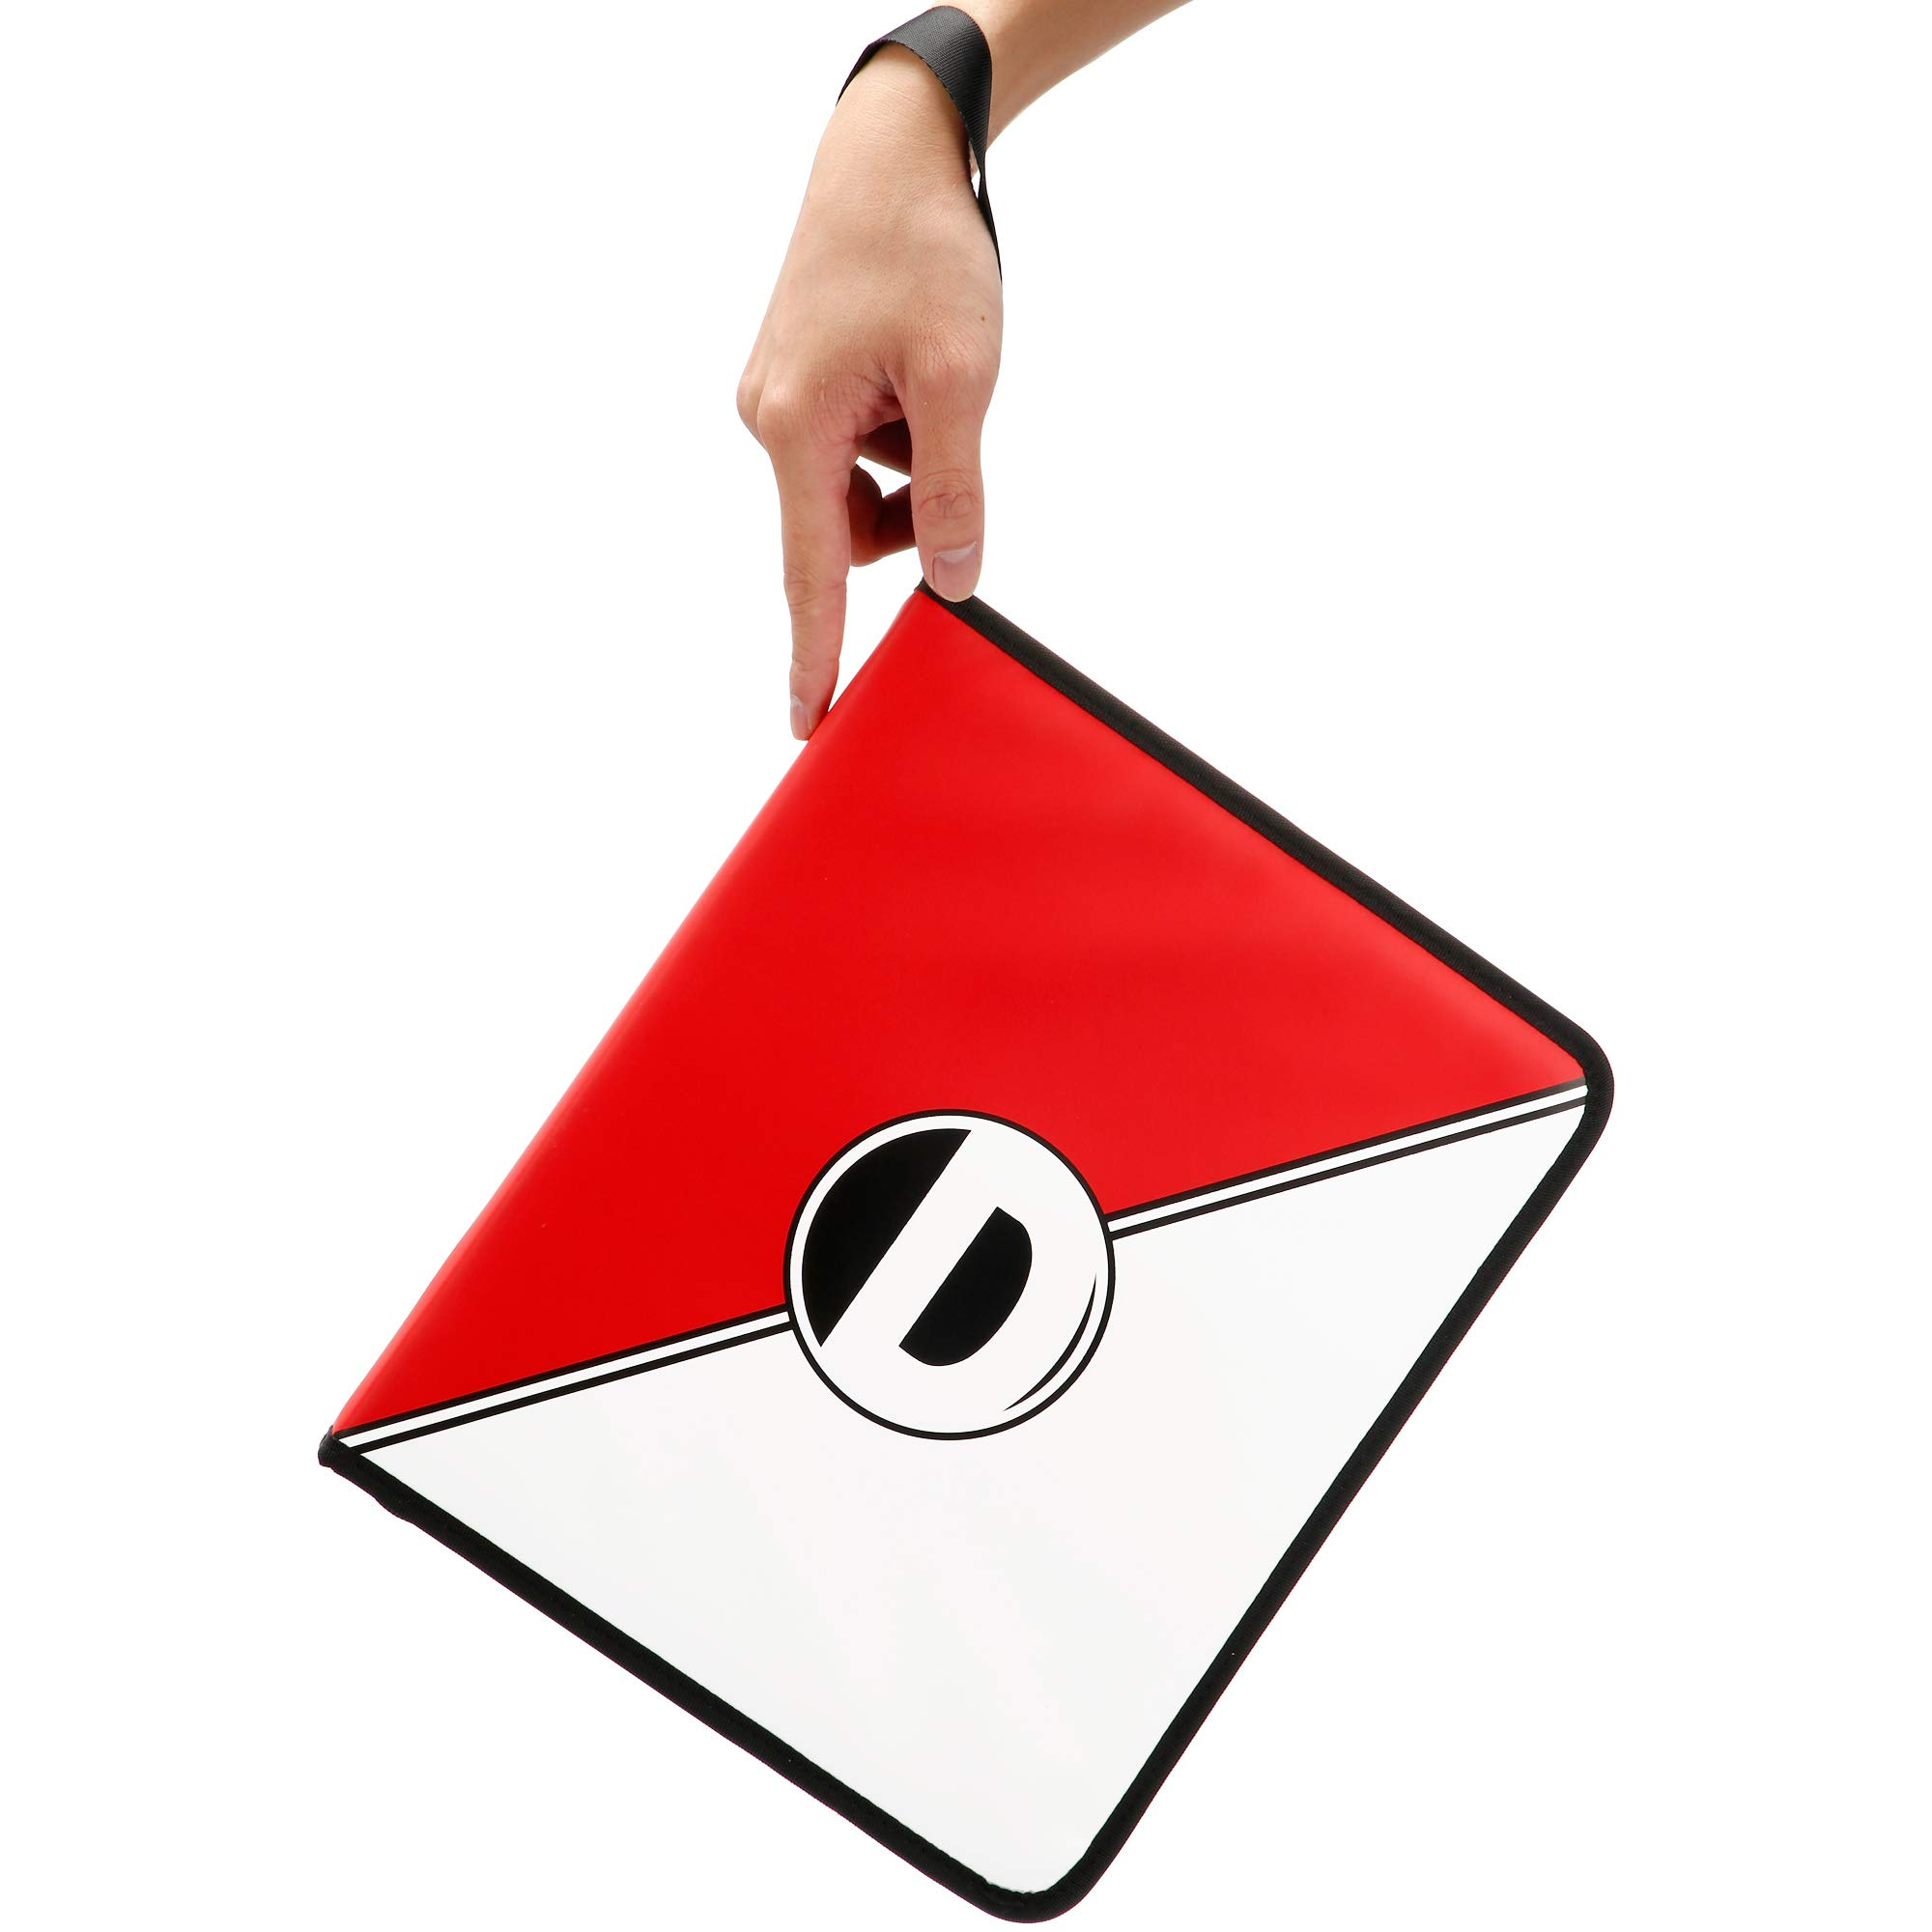 D DACCKIT Carrying Case Compatible with Pokemon Trading Cards, Cards Collectors Album with 30 Premium 9-Pocket Pages, Holds Up to 540 Cards(Red and White Version) by D DACCKIT (Image #7)